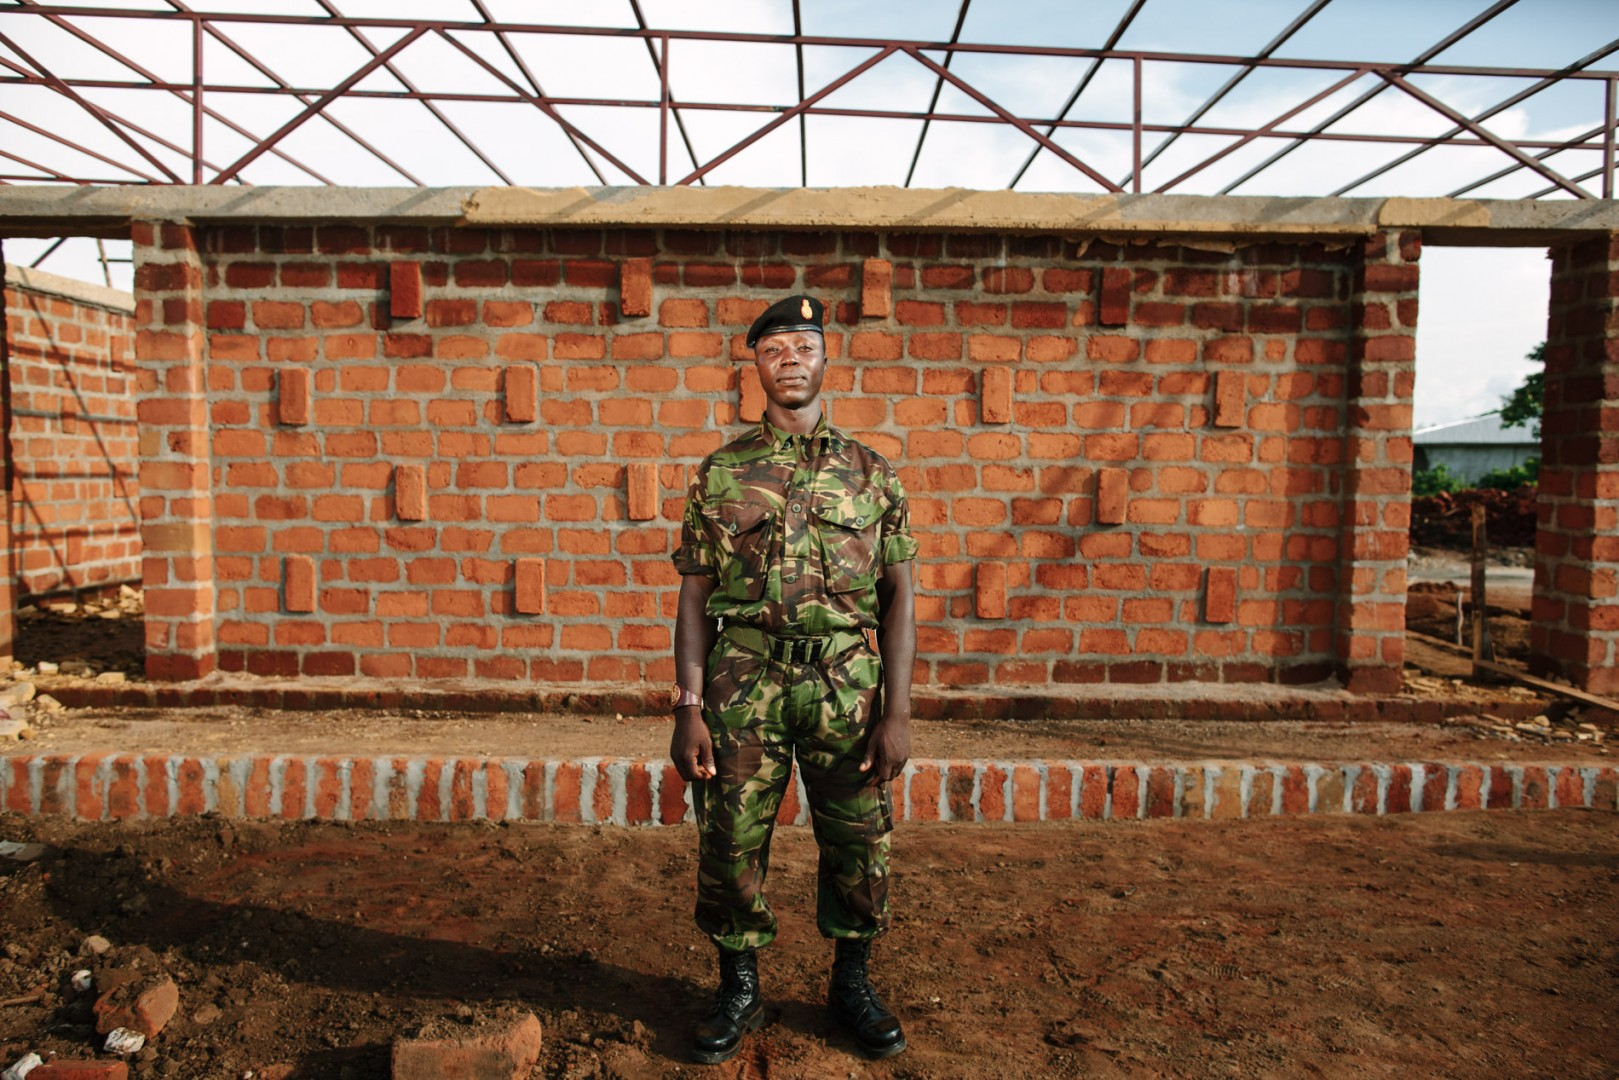 WO II Baibureh Kamara, Being an engineer Baibureh took a keen interest in the build, learning new techniques and passing on his own knowledge.